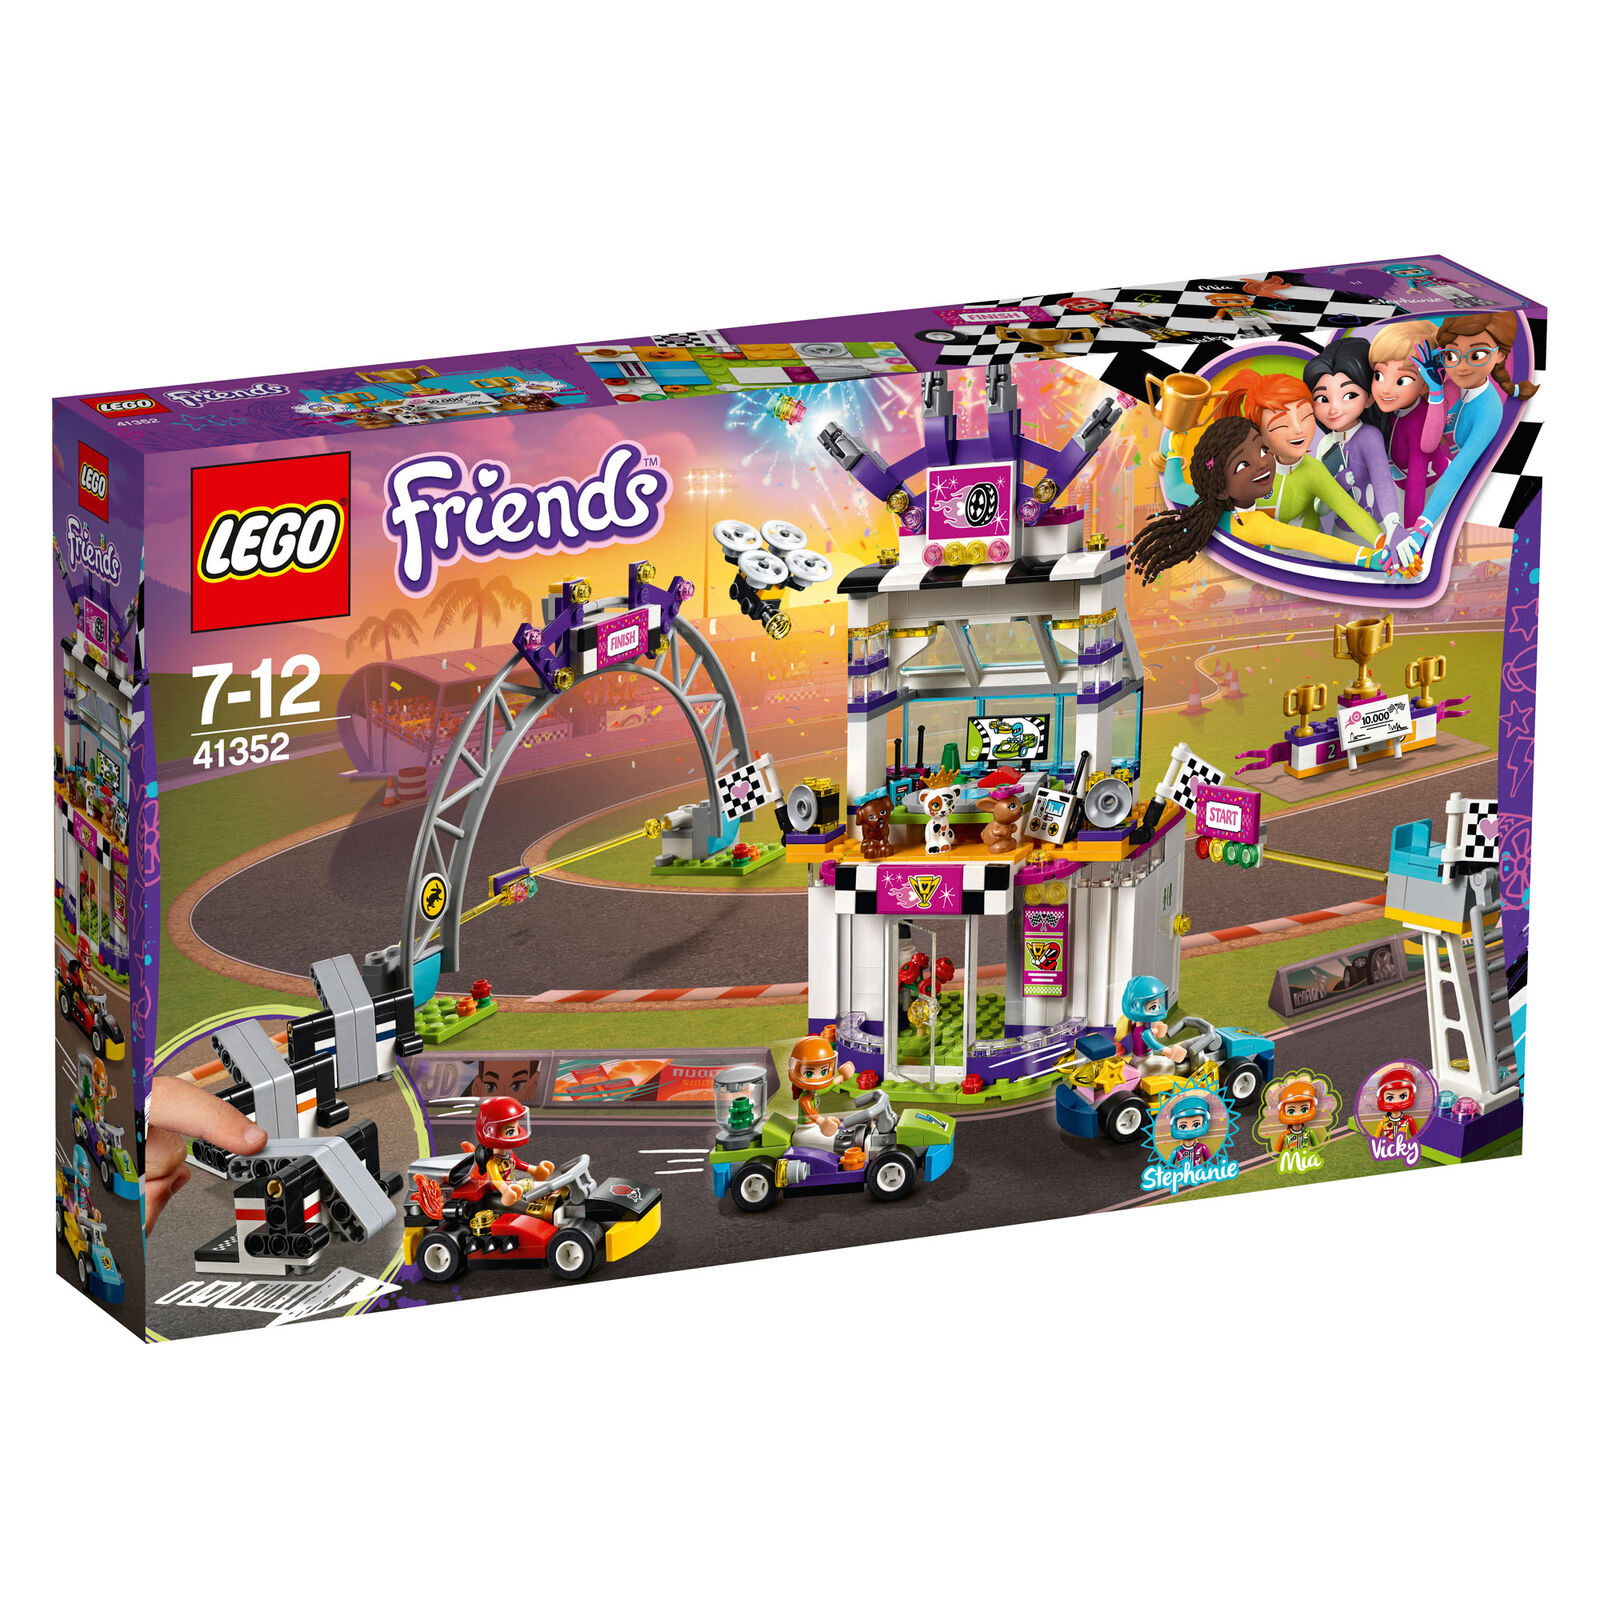 41352 LEGO Friends Friends Friends The Big Race Day 648 Pieces Age 7+ New Release For 2018 7a8467